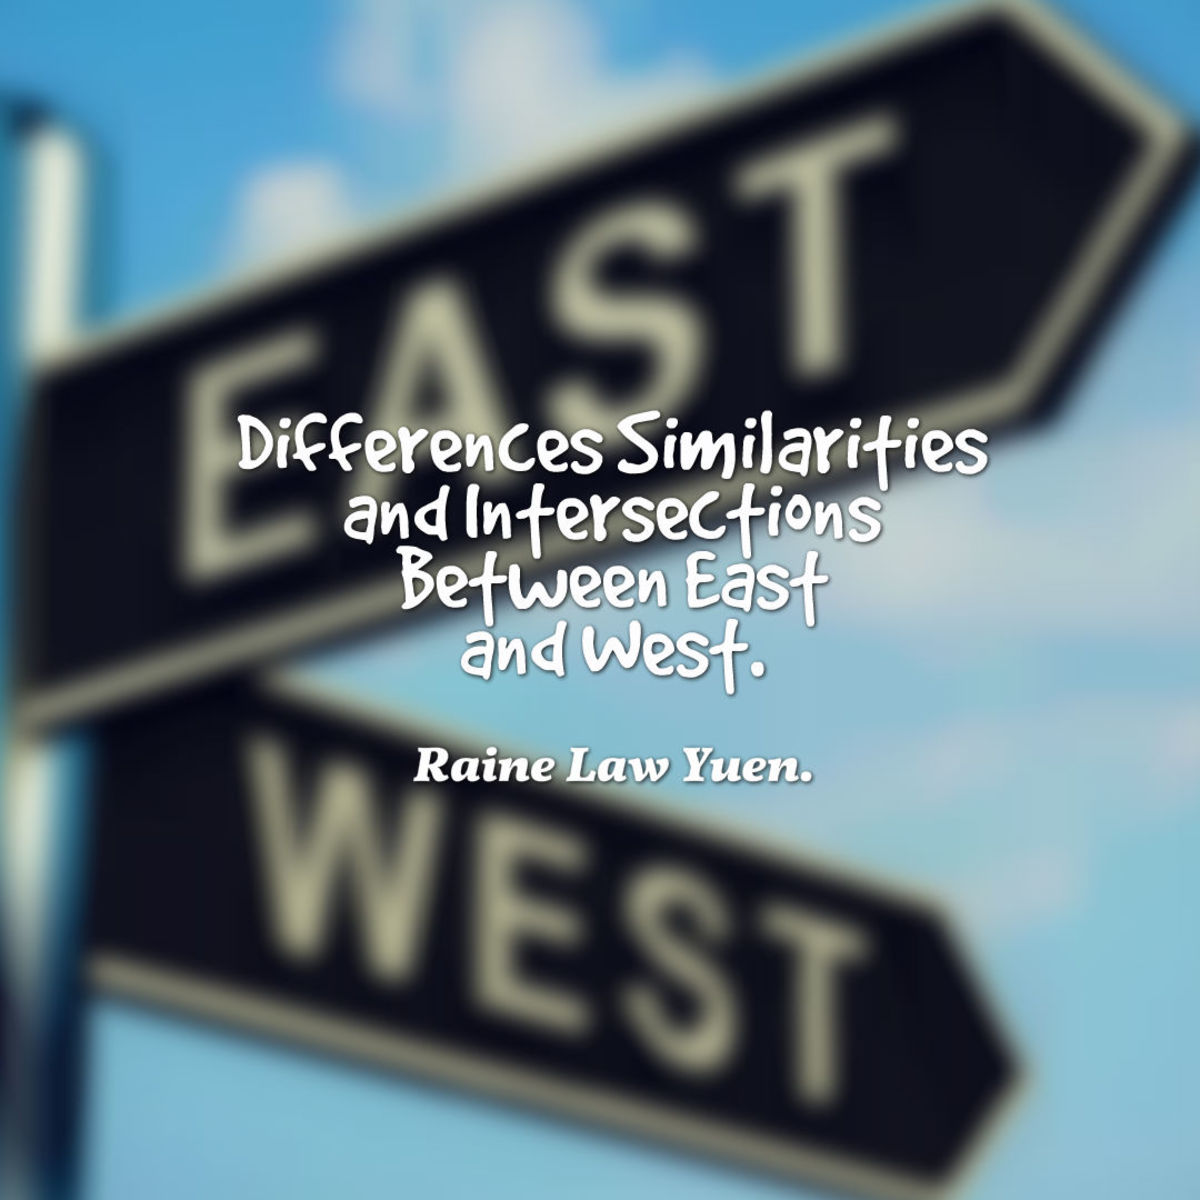 Differences, Similarities & Intersections Between East and West